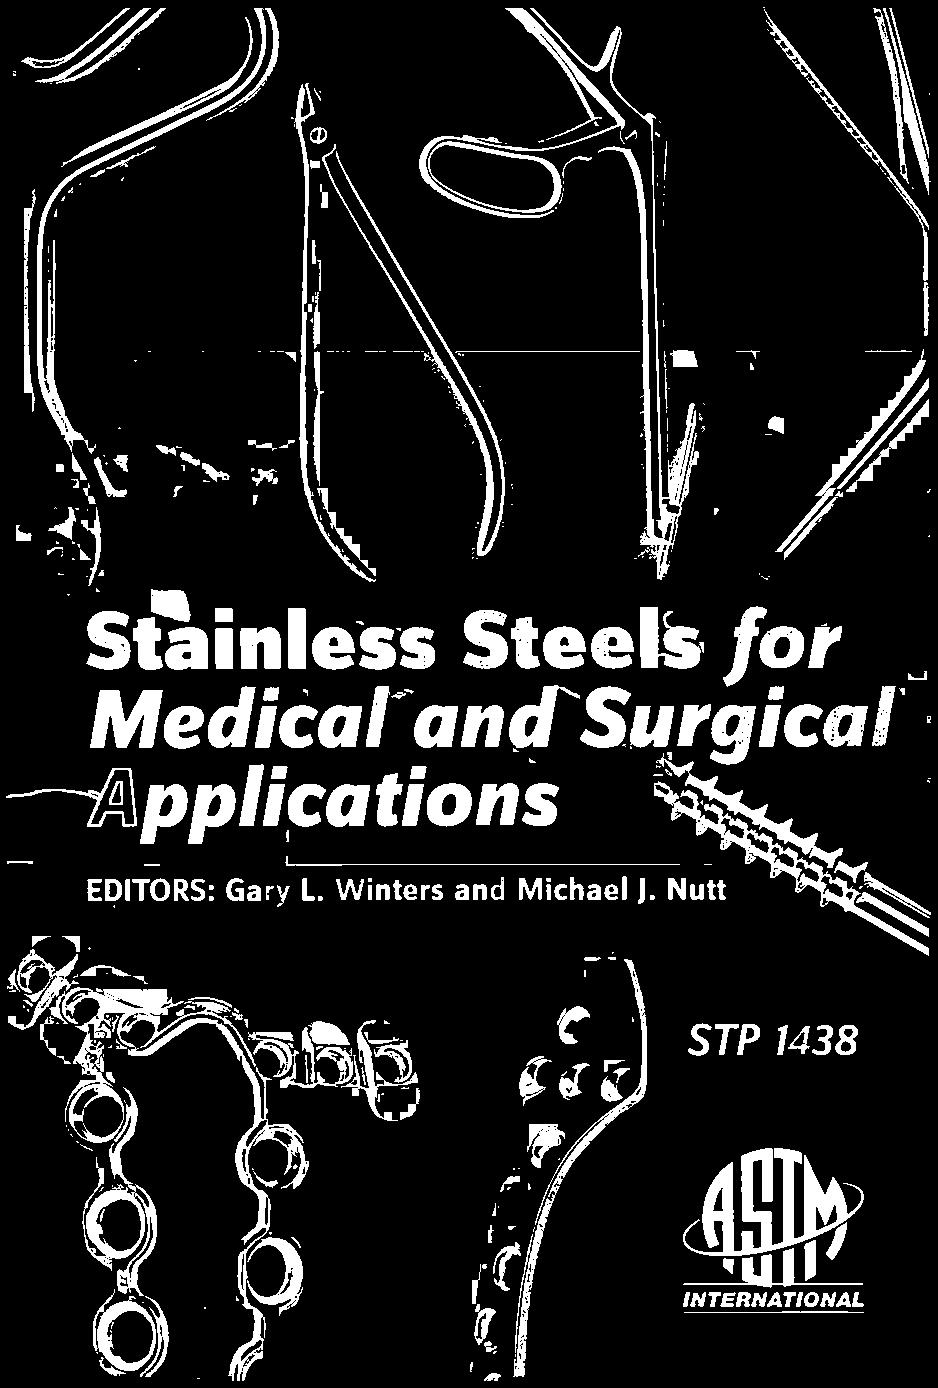 1. 2 STP 1438 Stainless Steels for Medical and Surgical Applications ...